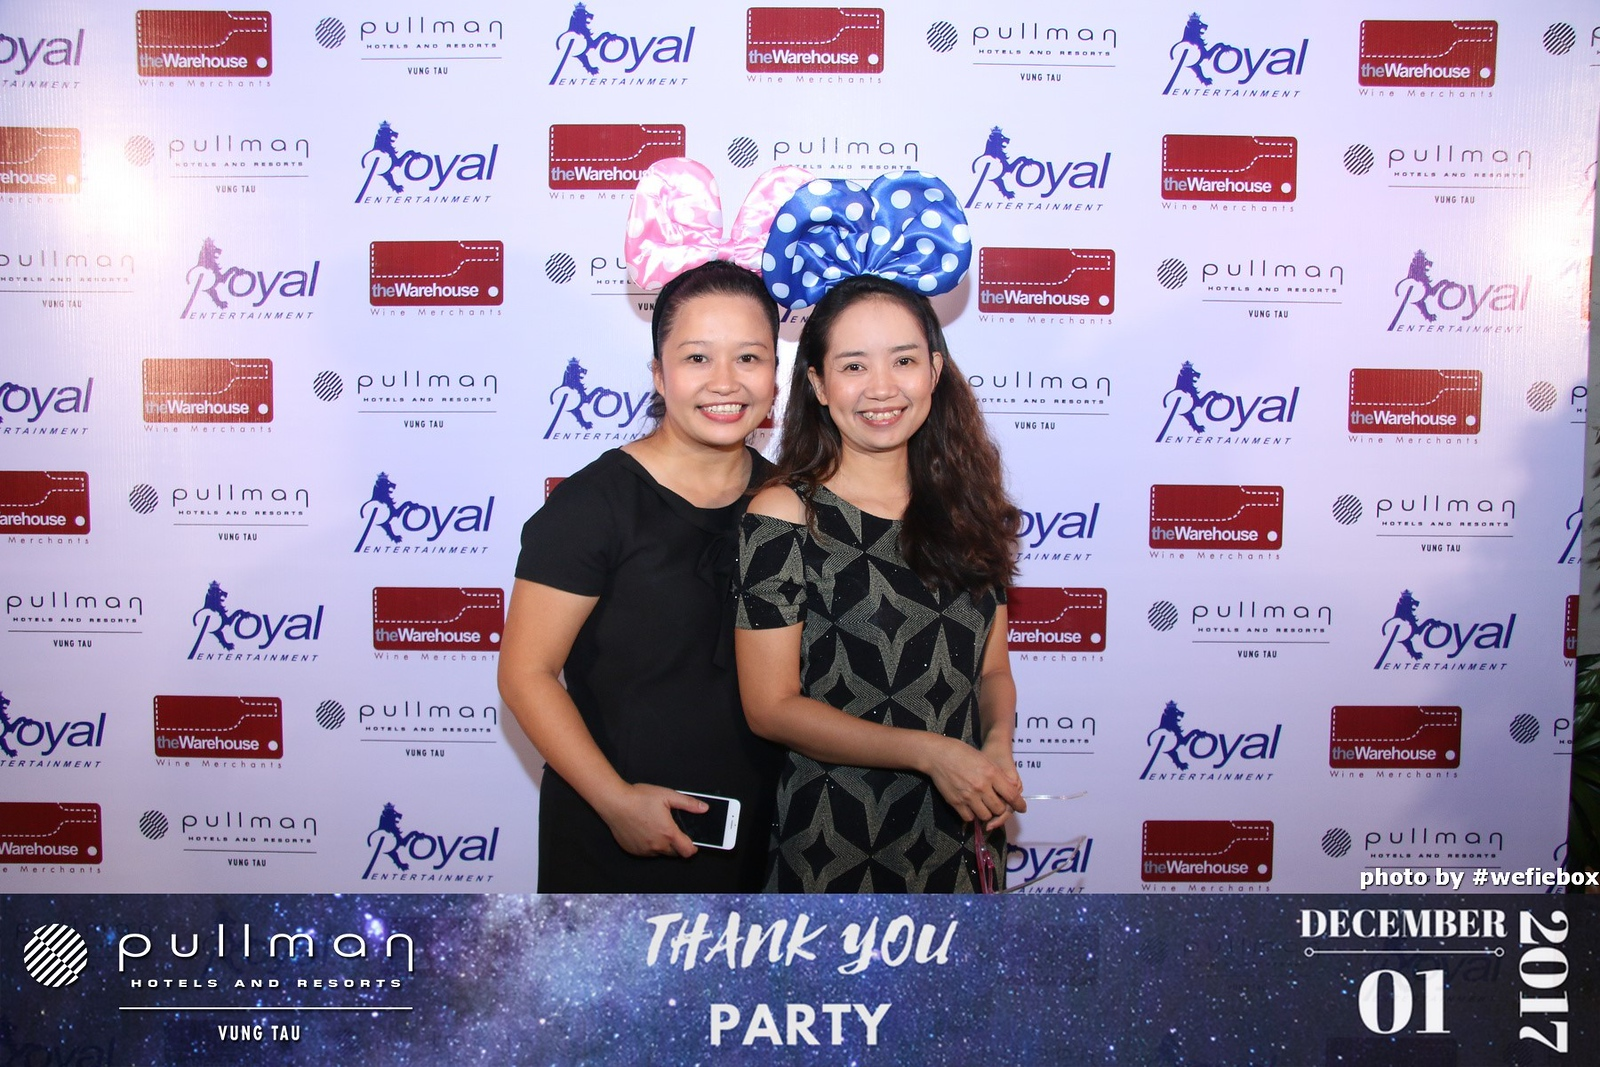 Pullman-Vung-Tau-Thank-You-Party-2017-photobooth-instant-print-chup-anh-lay-lien-su-kien-tiec-cuoi-048